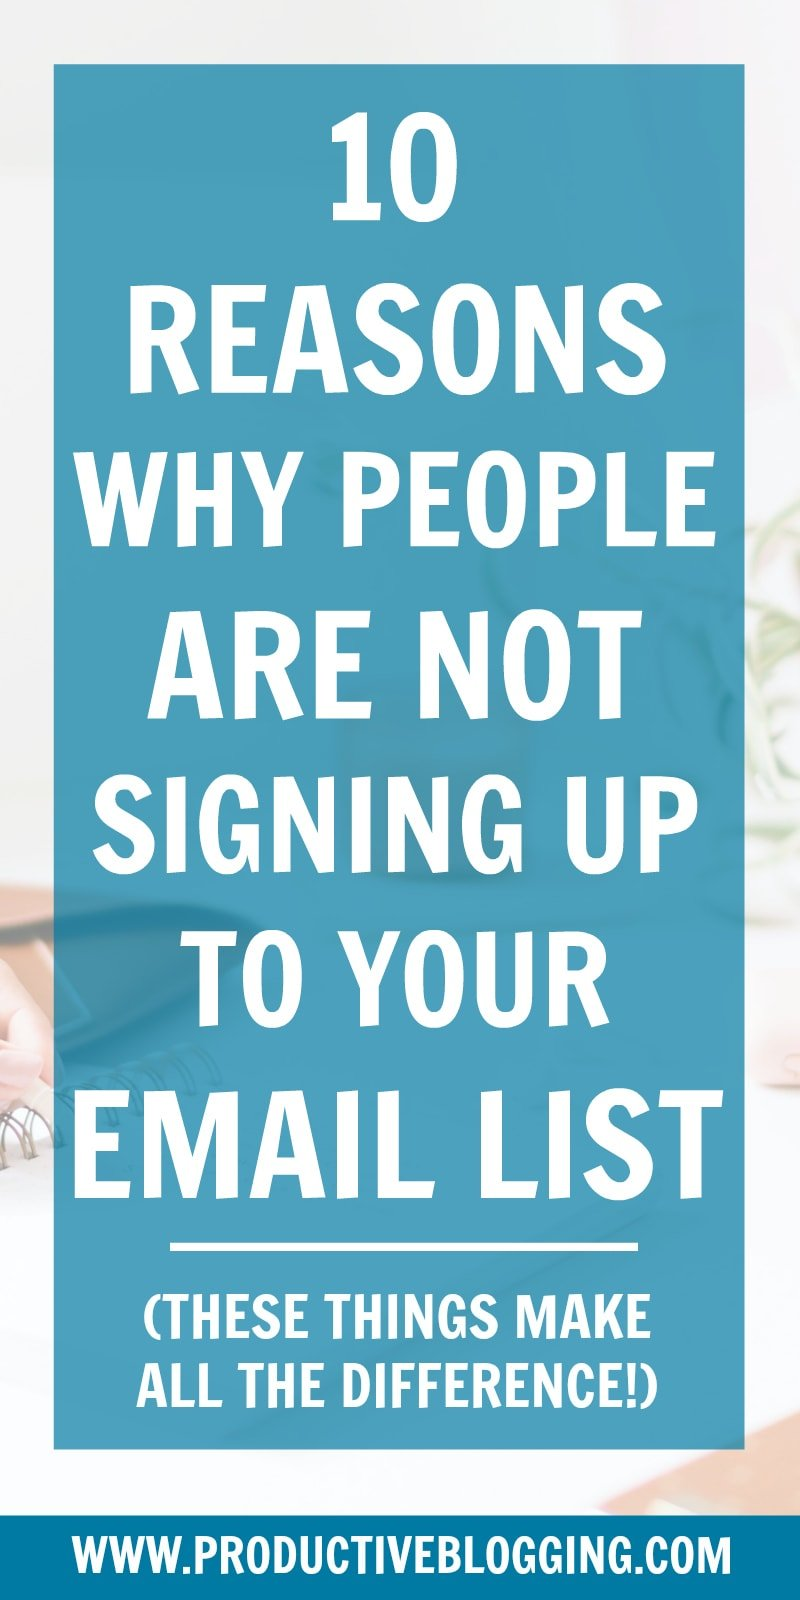 You know email marketing is important… and you are trying… but no one is joining your email list… WHY??? Here are 10 reasons why people are NOT signing up to your email list… #emaillist #emaillistgrowth #emailmarketing #emailmarketingtips #growyouremaillist #convertkit #optinoffer #leadmagnet #contentupgrade #listbuilding #subscribers #blogging #bloggers #bloggingtips #growyourblog #bloggrowth #productivity #productivitytips #productiveblogging #blogsmarternotharder